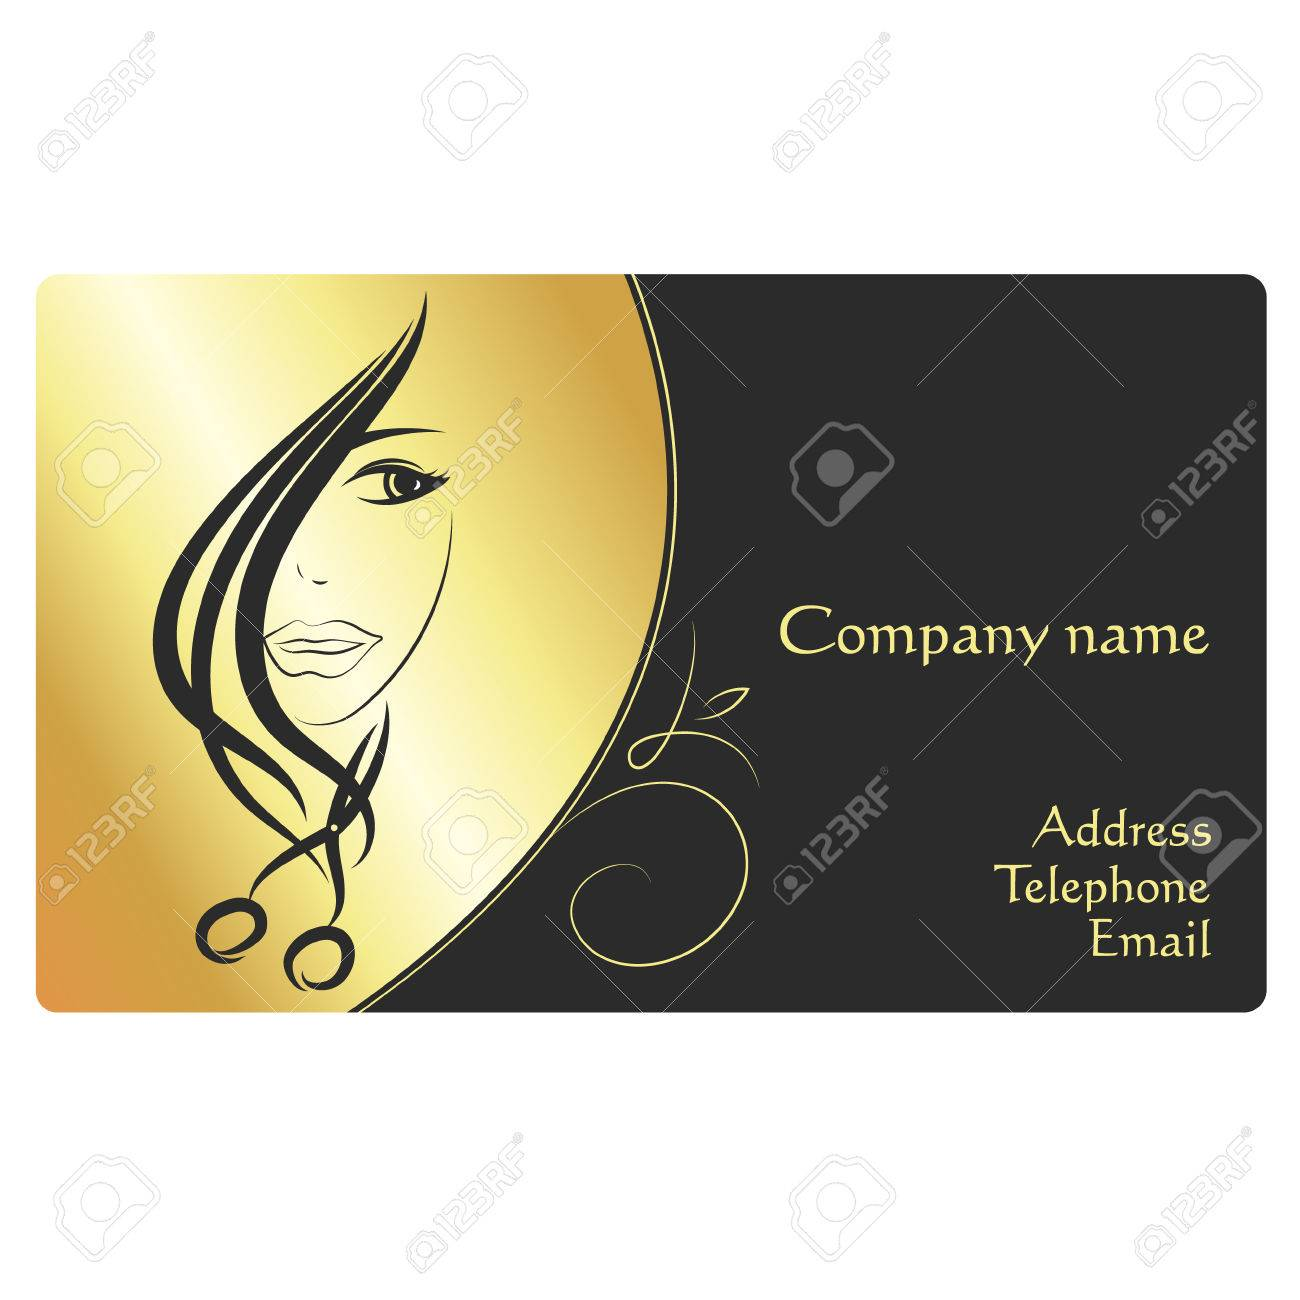 Beauty Salon Business Card, Face Girl And Scissors Royalty Free ...